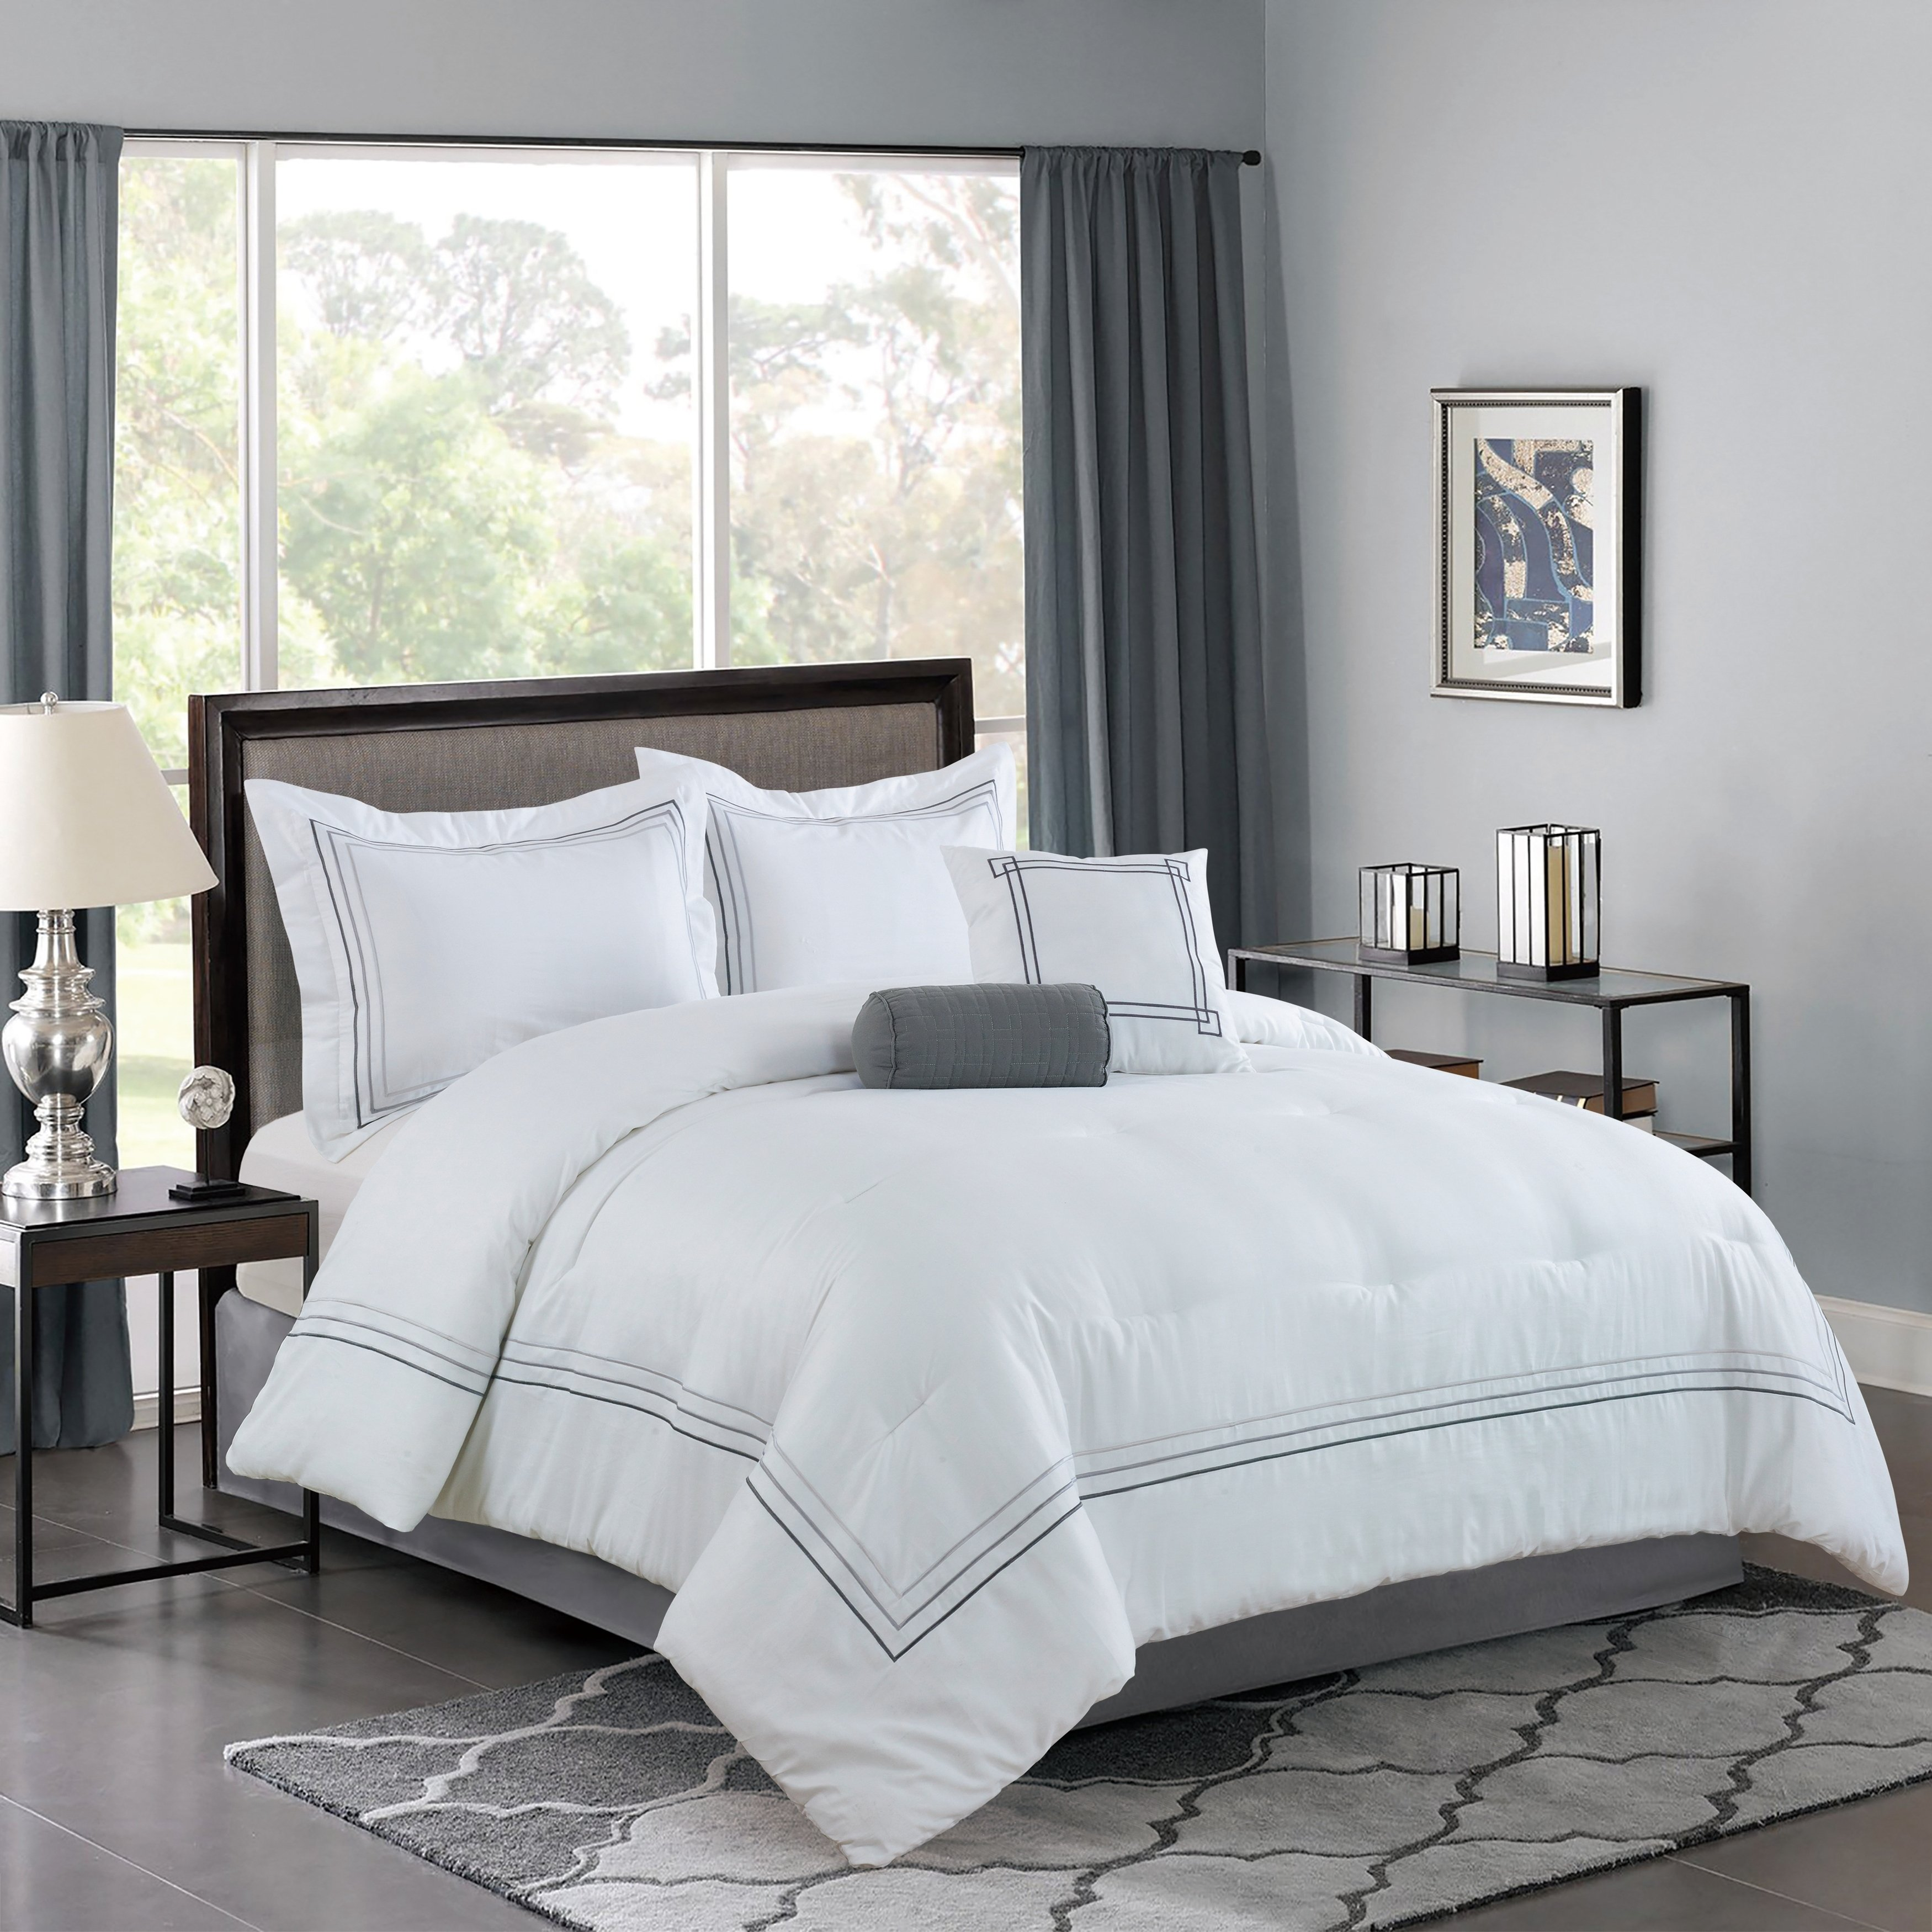 Online Shopping Bedding Furniture Electronics Jewelry Clothing More Comforter Sets Online Bedding Stores Comforters